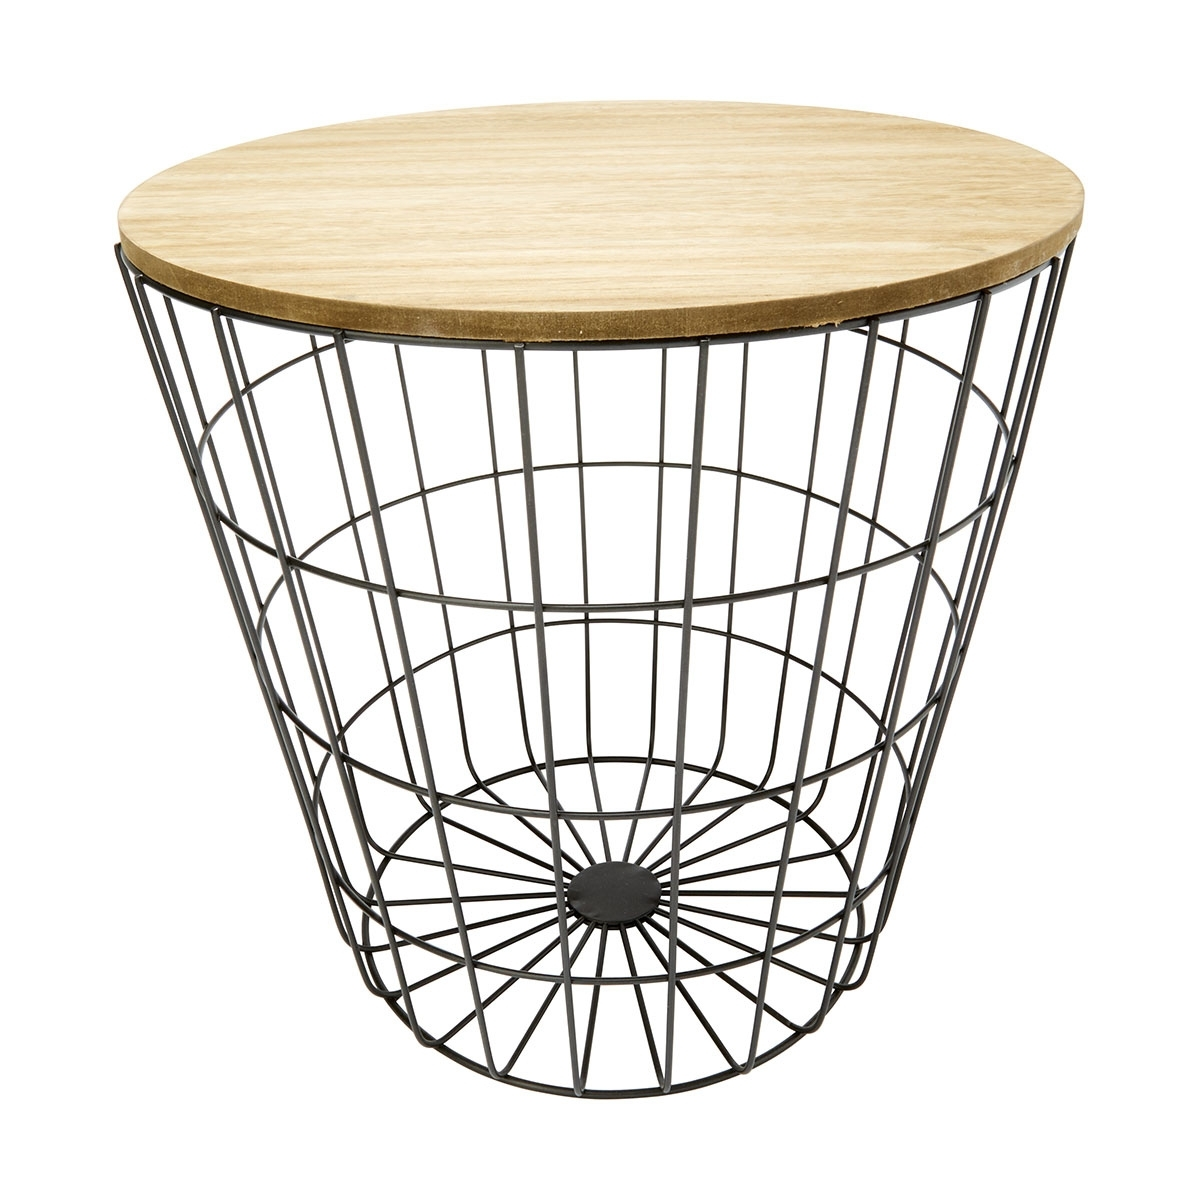 Storage Wire Basket Table Natural Black Kmart Formal Coffee 16 inside Black Wire Coffee Tables (Image 20 of 30)